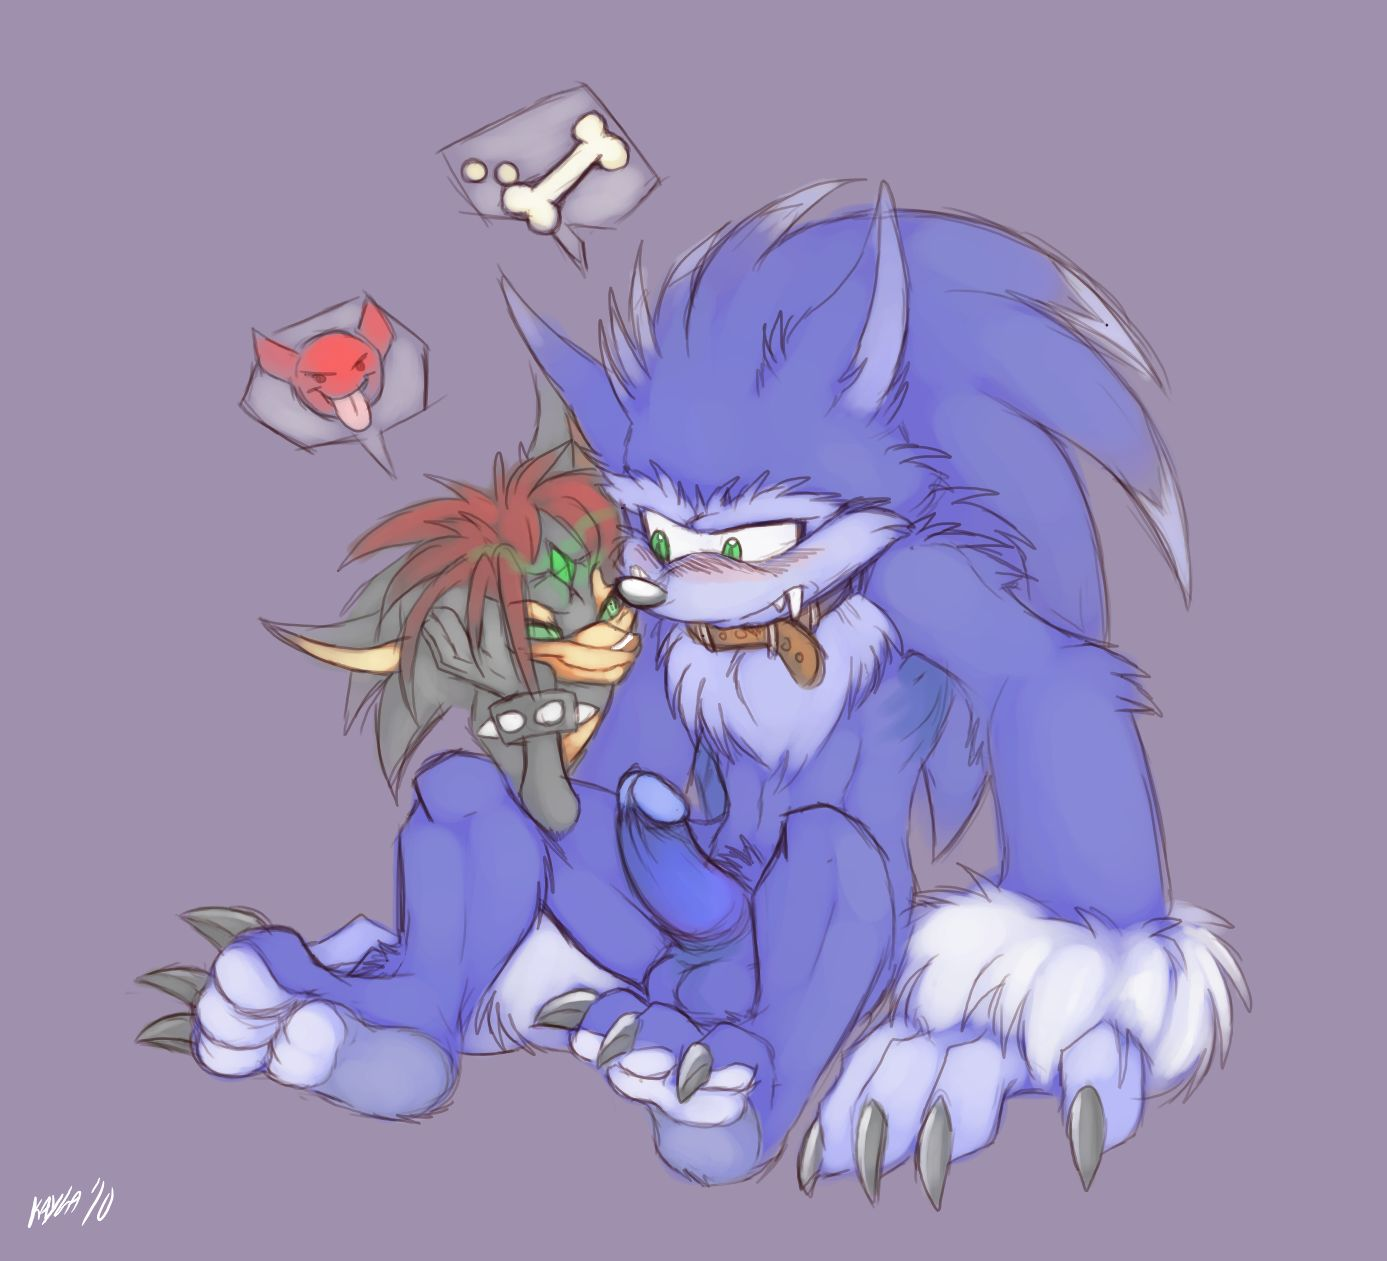 sonic werehog of images the Harley quinn naked with joker